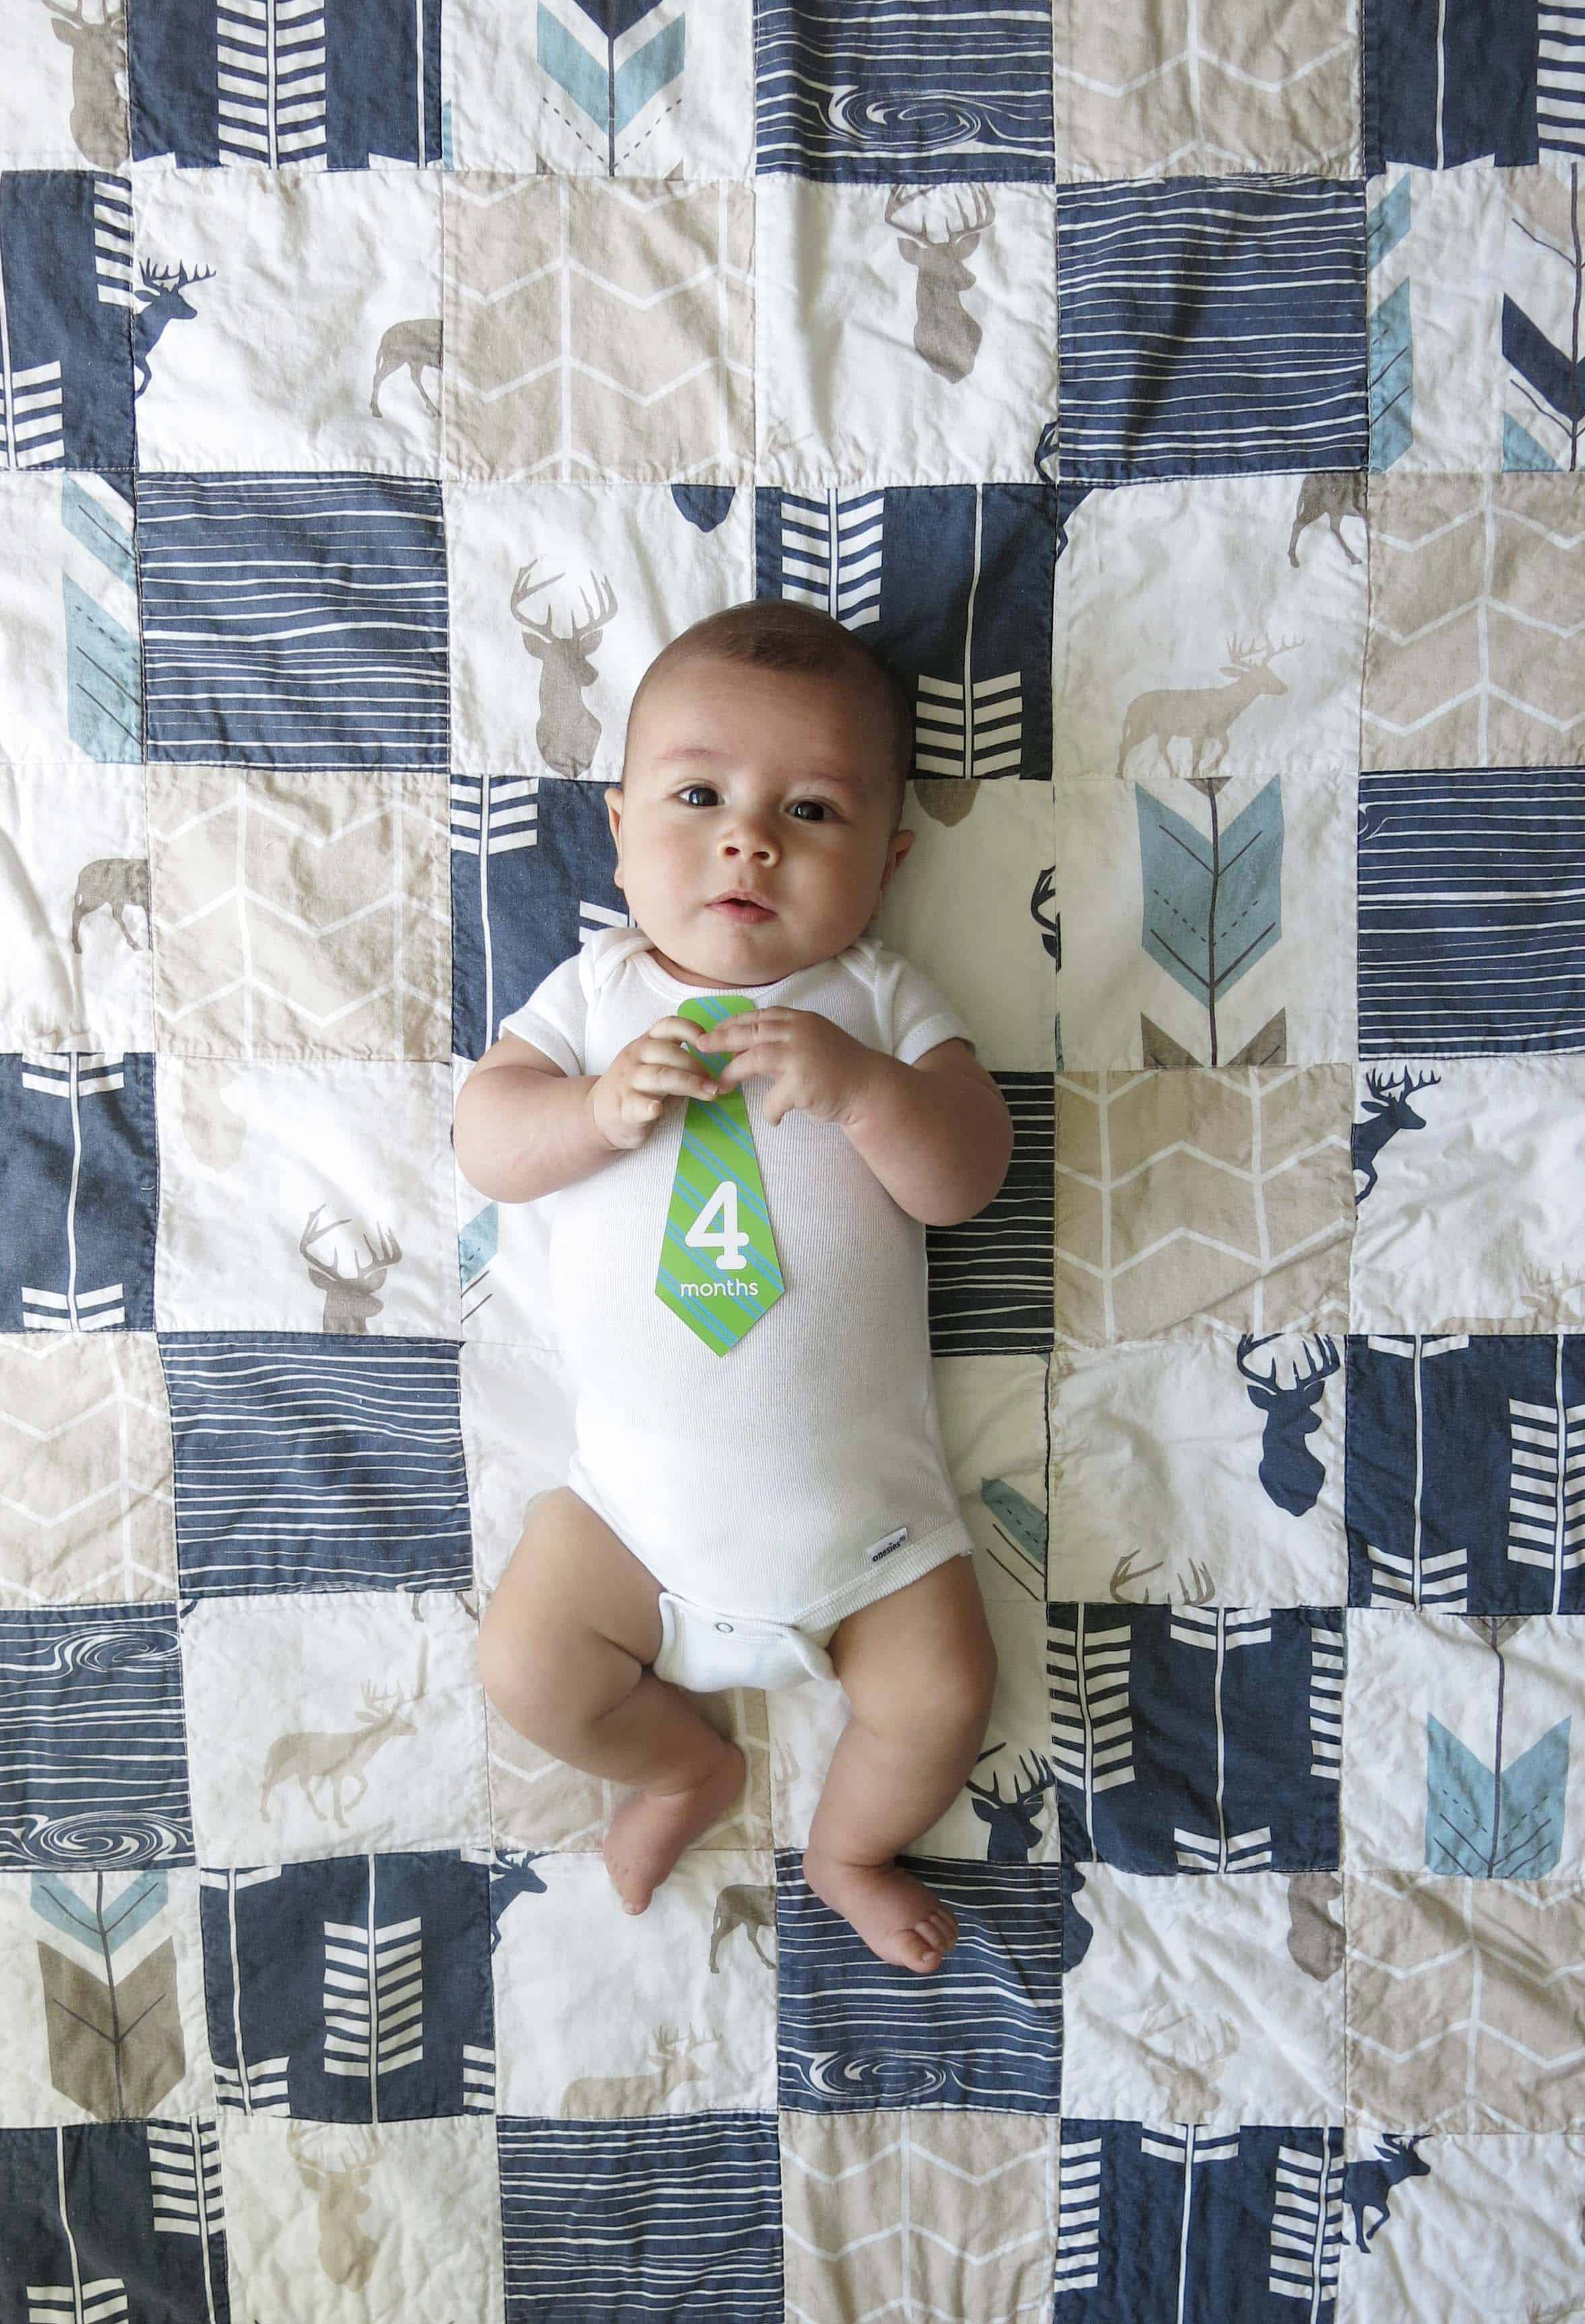 a baby with a tie that says 4 months, laying on a rustic woodland themed blanket